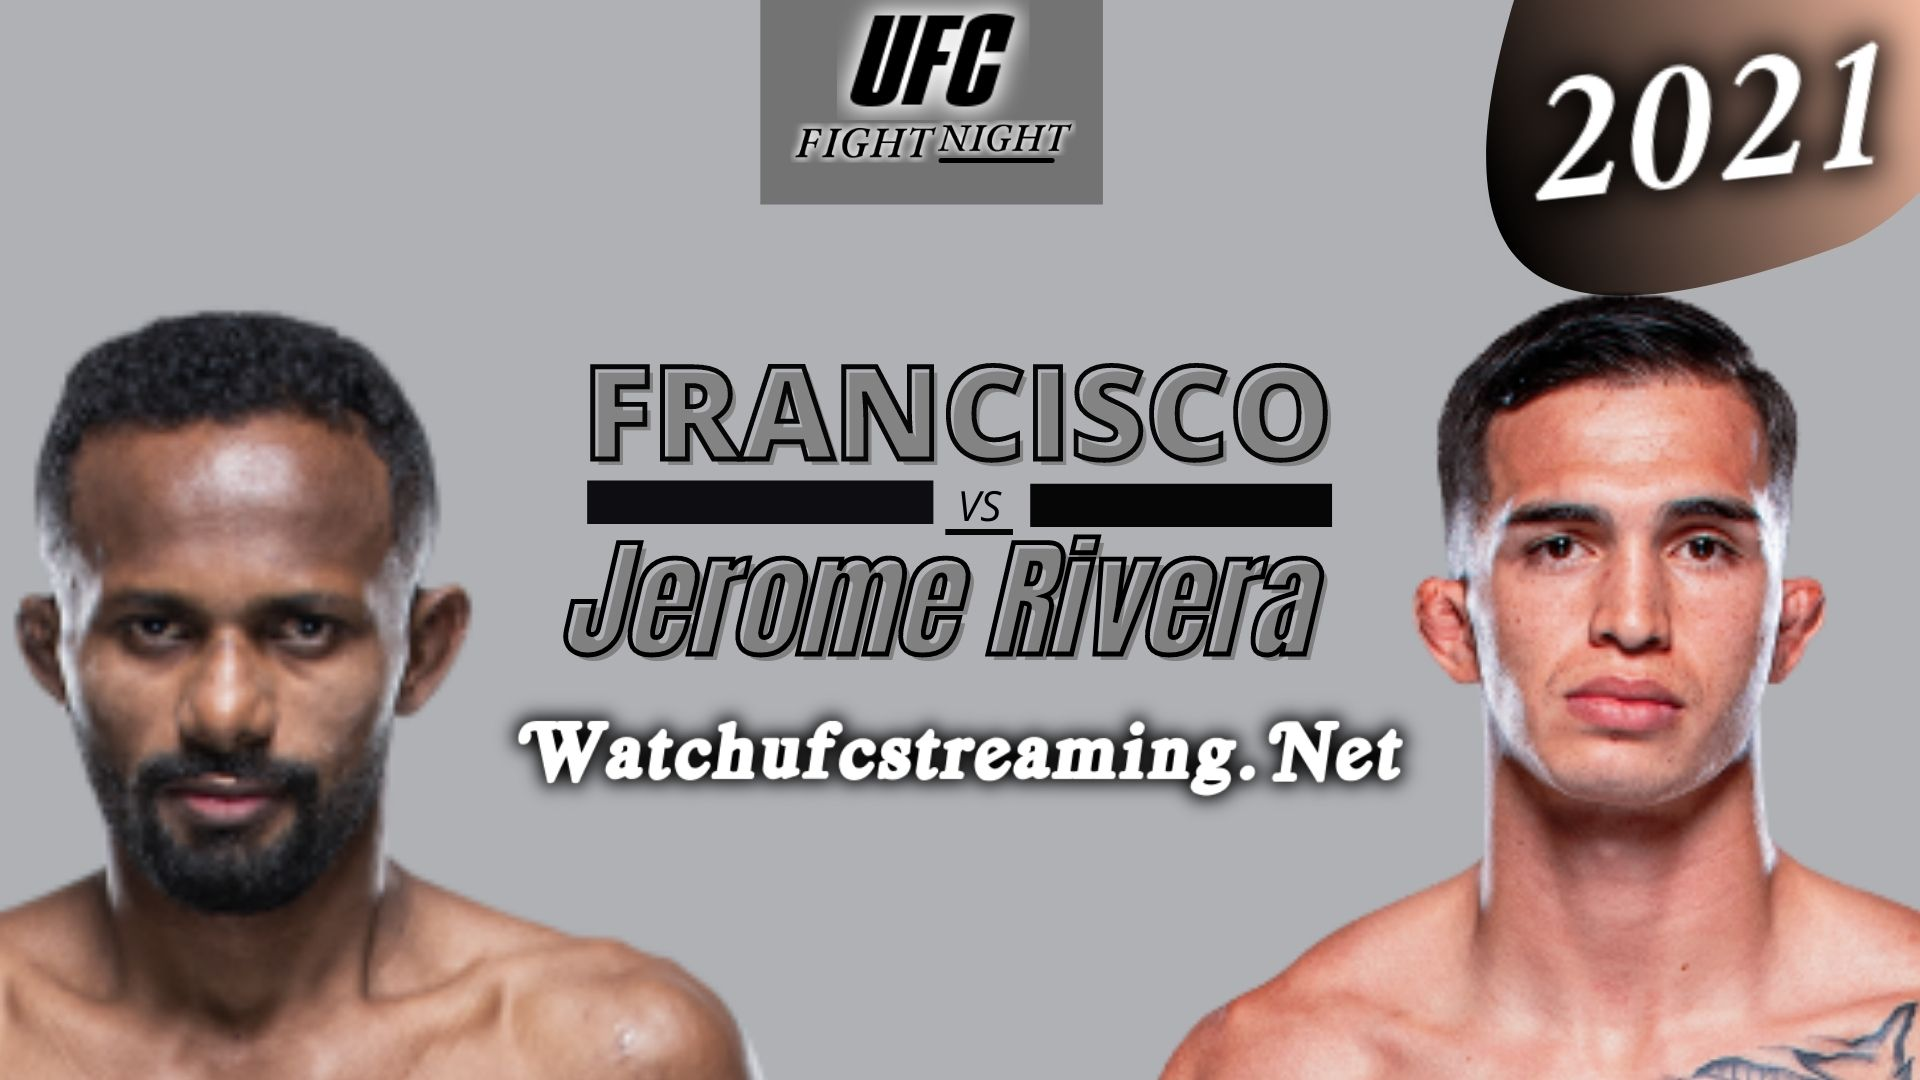 UFC Fight Night : Francisco Figueiredo Vs Jerome Rivera Highlights 2021